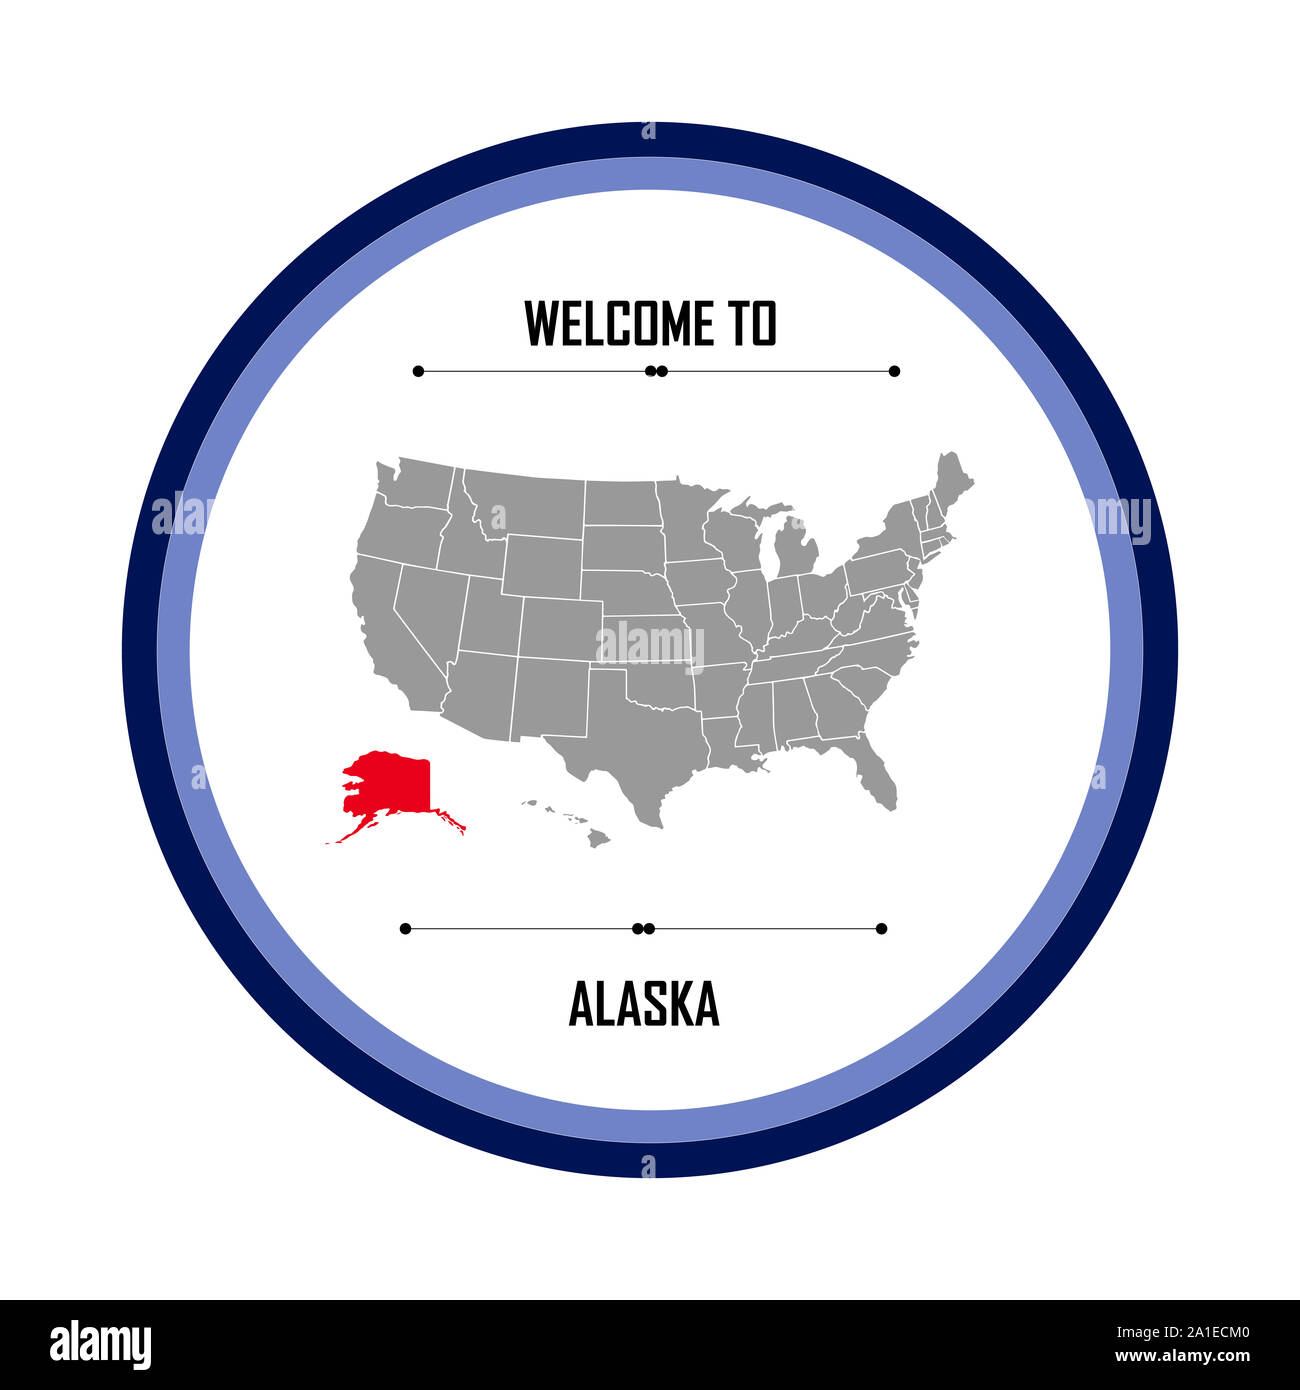 United States Map Alaska And Hawaii Stock Photos & United ...